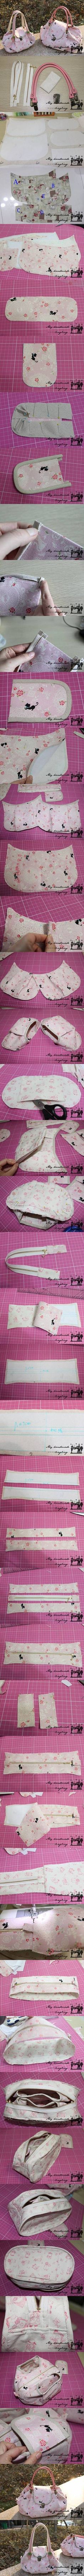 DIY Sew Cute Handbag diy craft crafts craft ideas diy ideas diy crafts how to tutorial diy accessories fashion crafts craft handbag